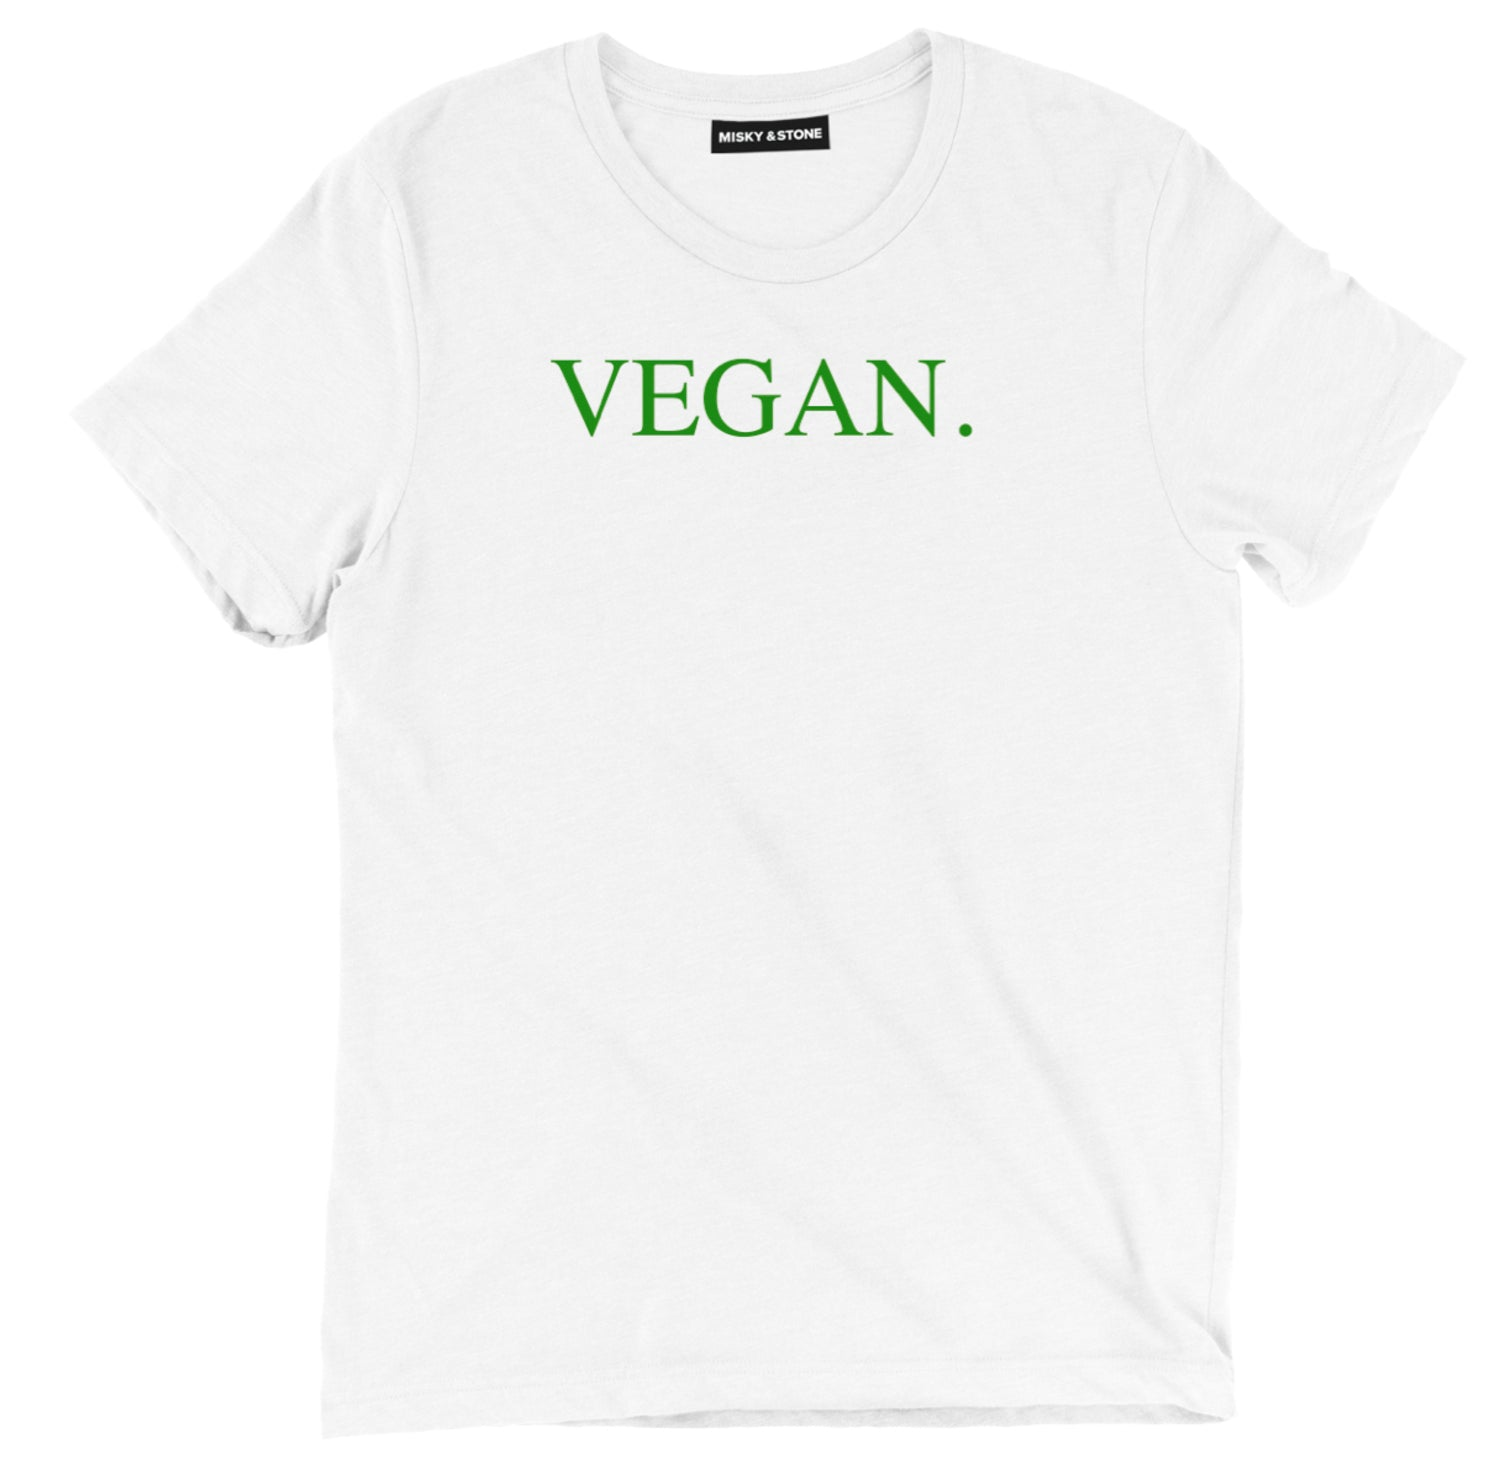 vegan Hip Hop tee shirt, vegan apparel, vegan clothing, vegan merch, funny vegan tee shirs, Kendrick Lamar T SHIRT, KENDRICK LAMAR FUNNY TEE